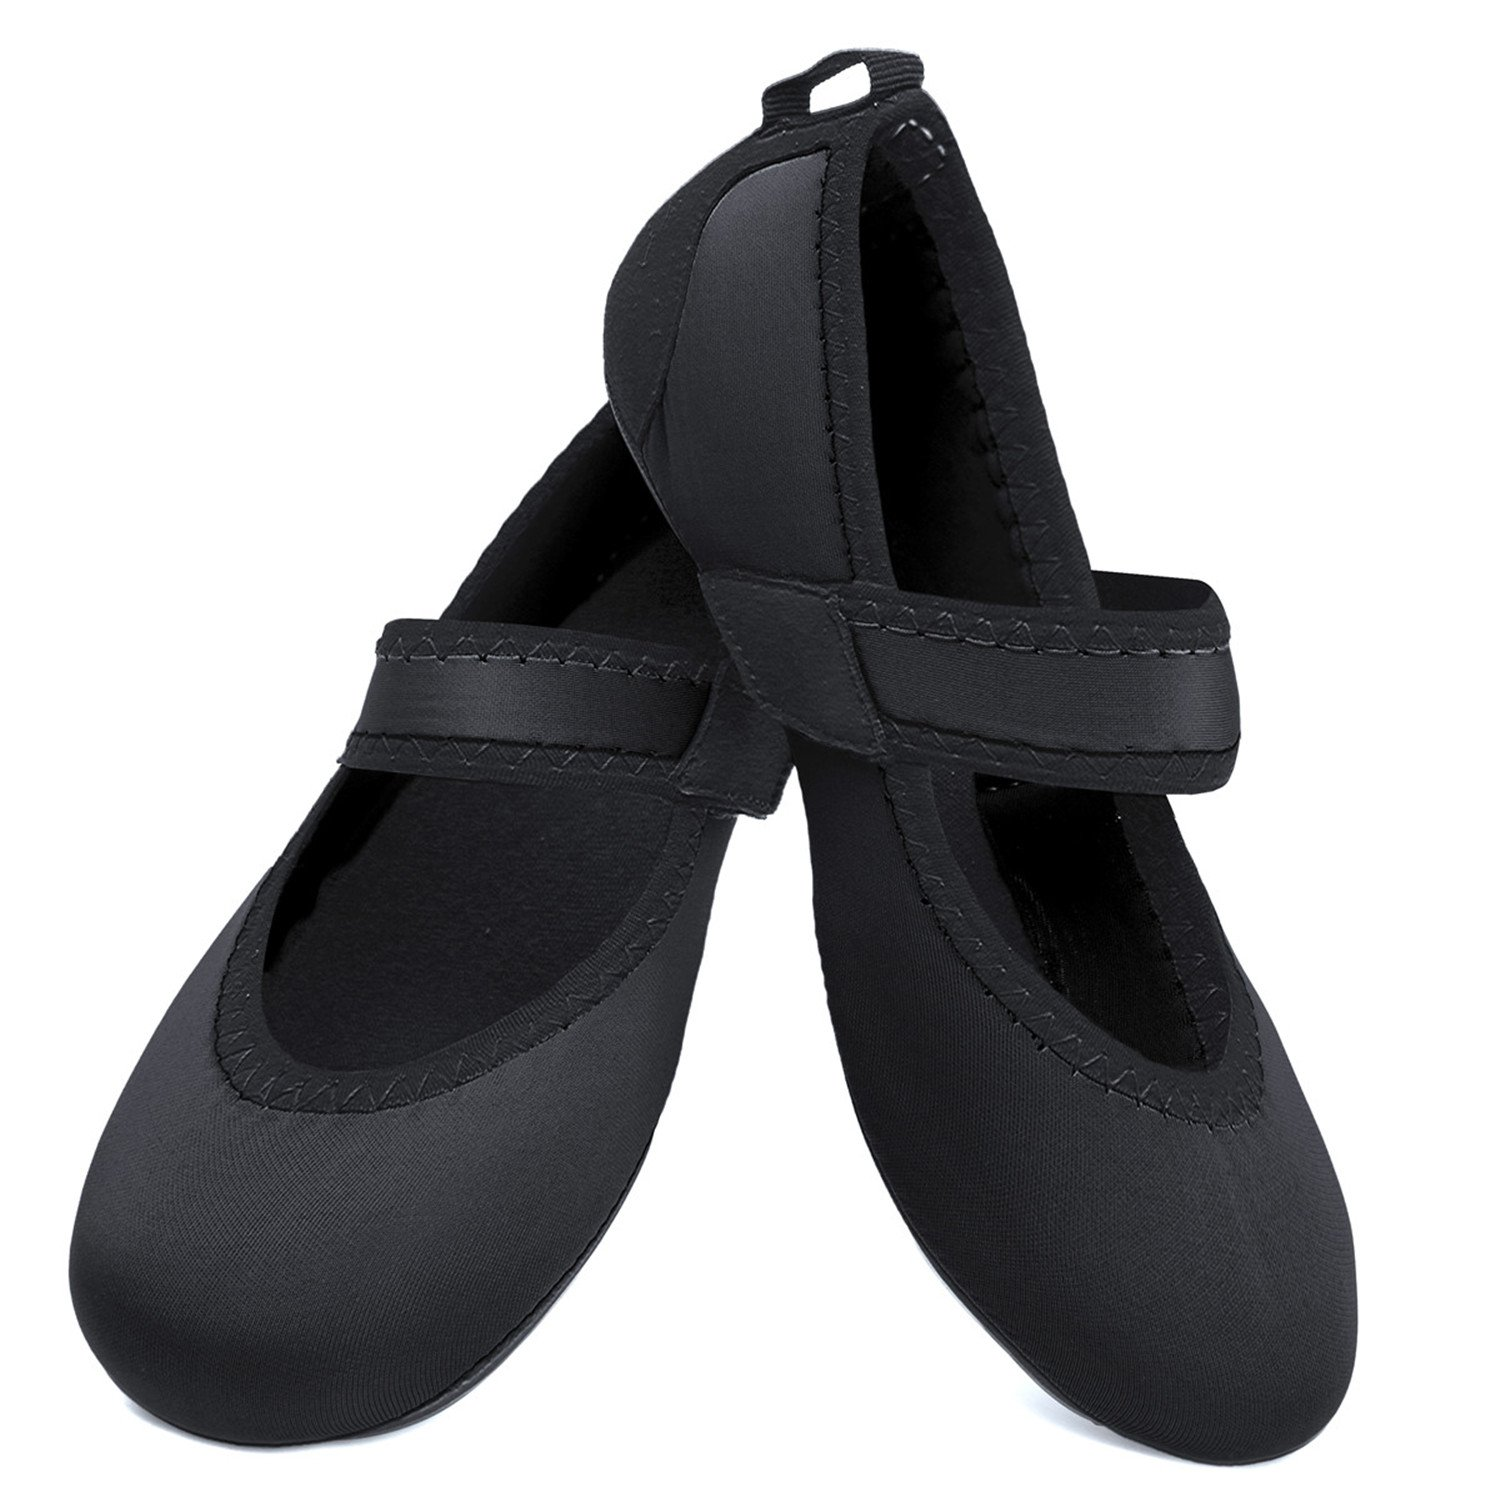 Centipede Demon Water Shoes Flexible Flats for Womens Traveling Flat Shoes Dark by Centipede Demon (Image #1)